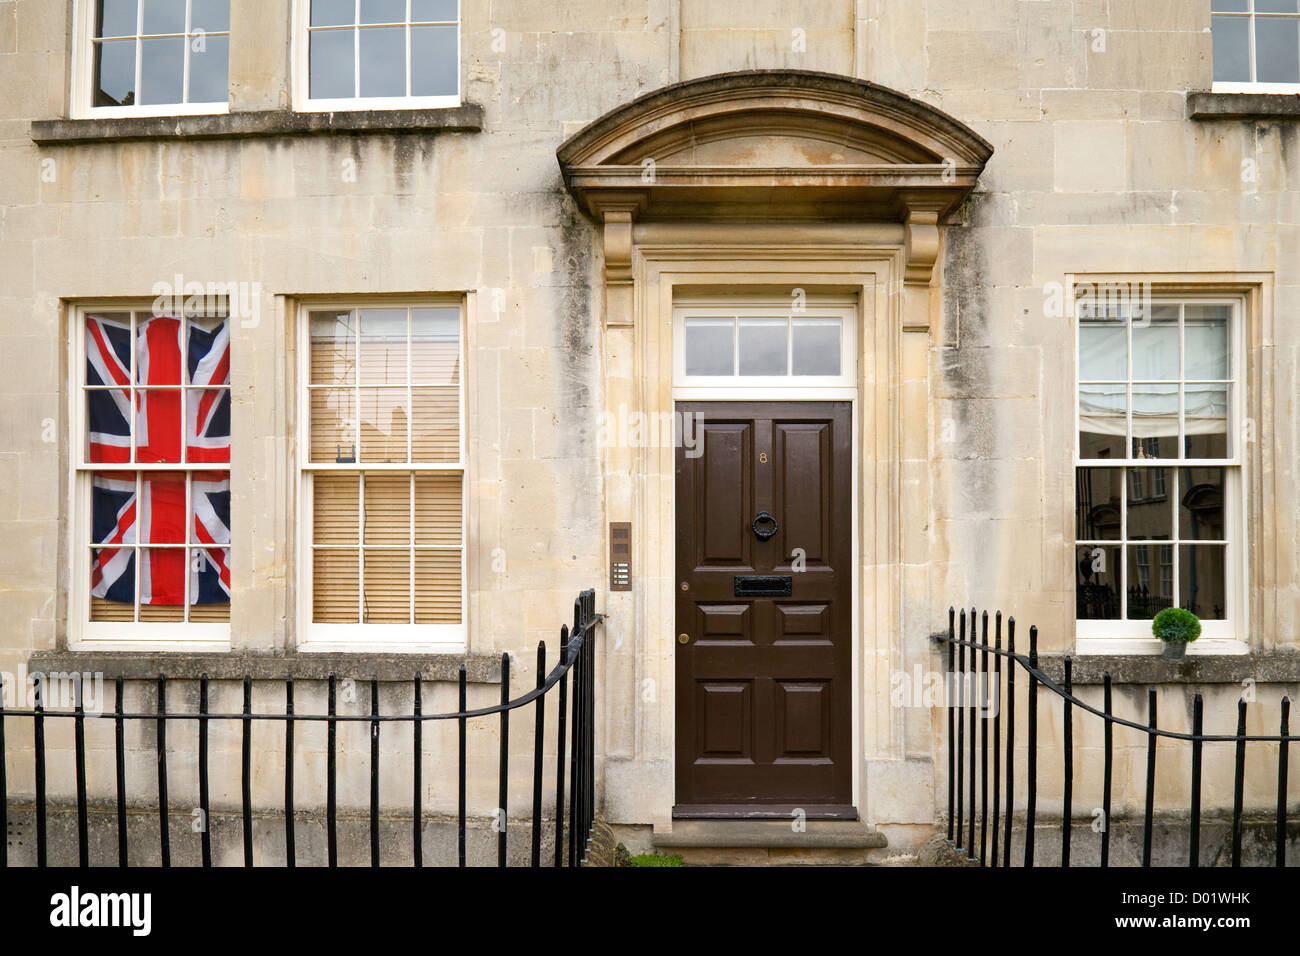 A patriotic british house with a Union Jack flag in the window, Bath Somerset UK - Stock Image